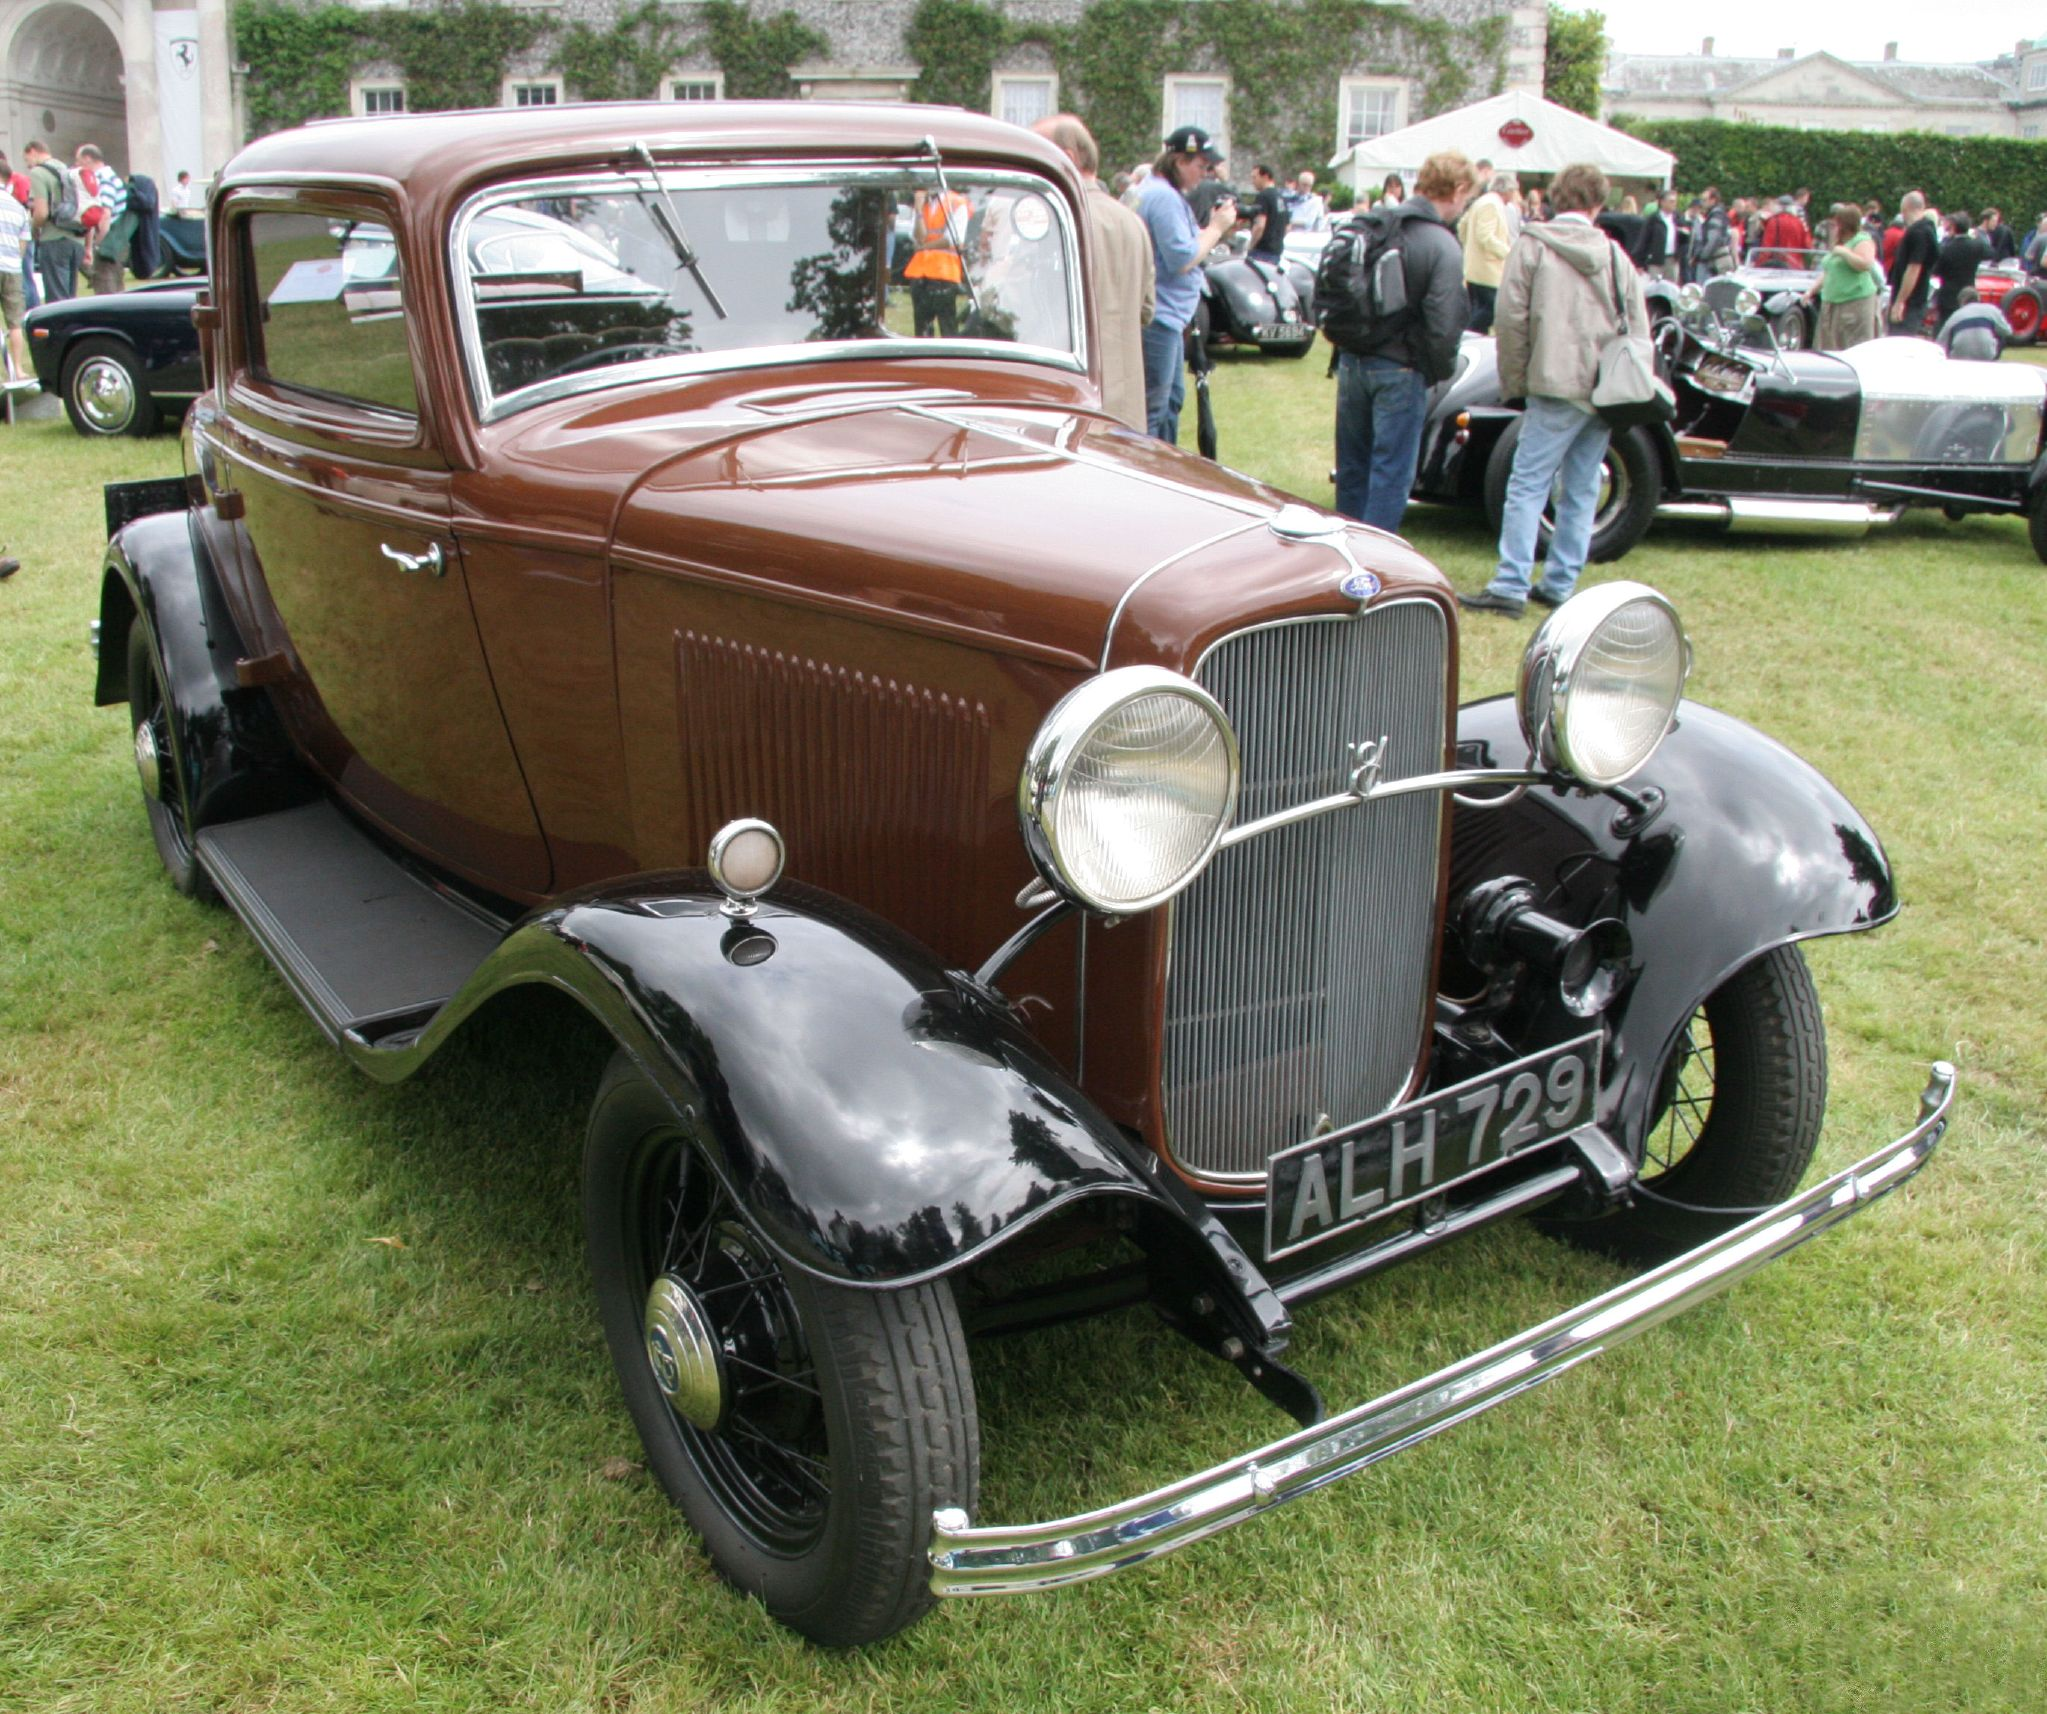 File:Ford 'Deuce' Coupe 1932